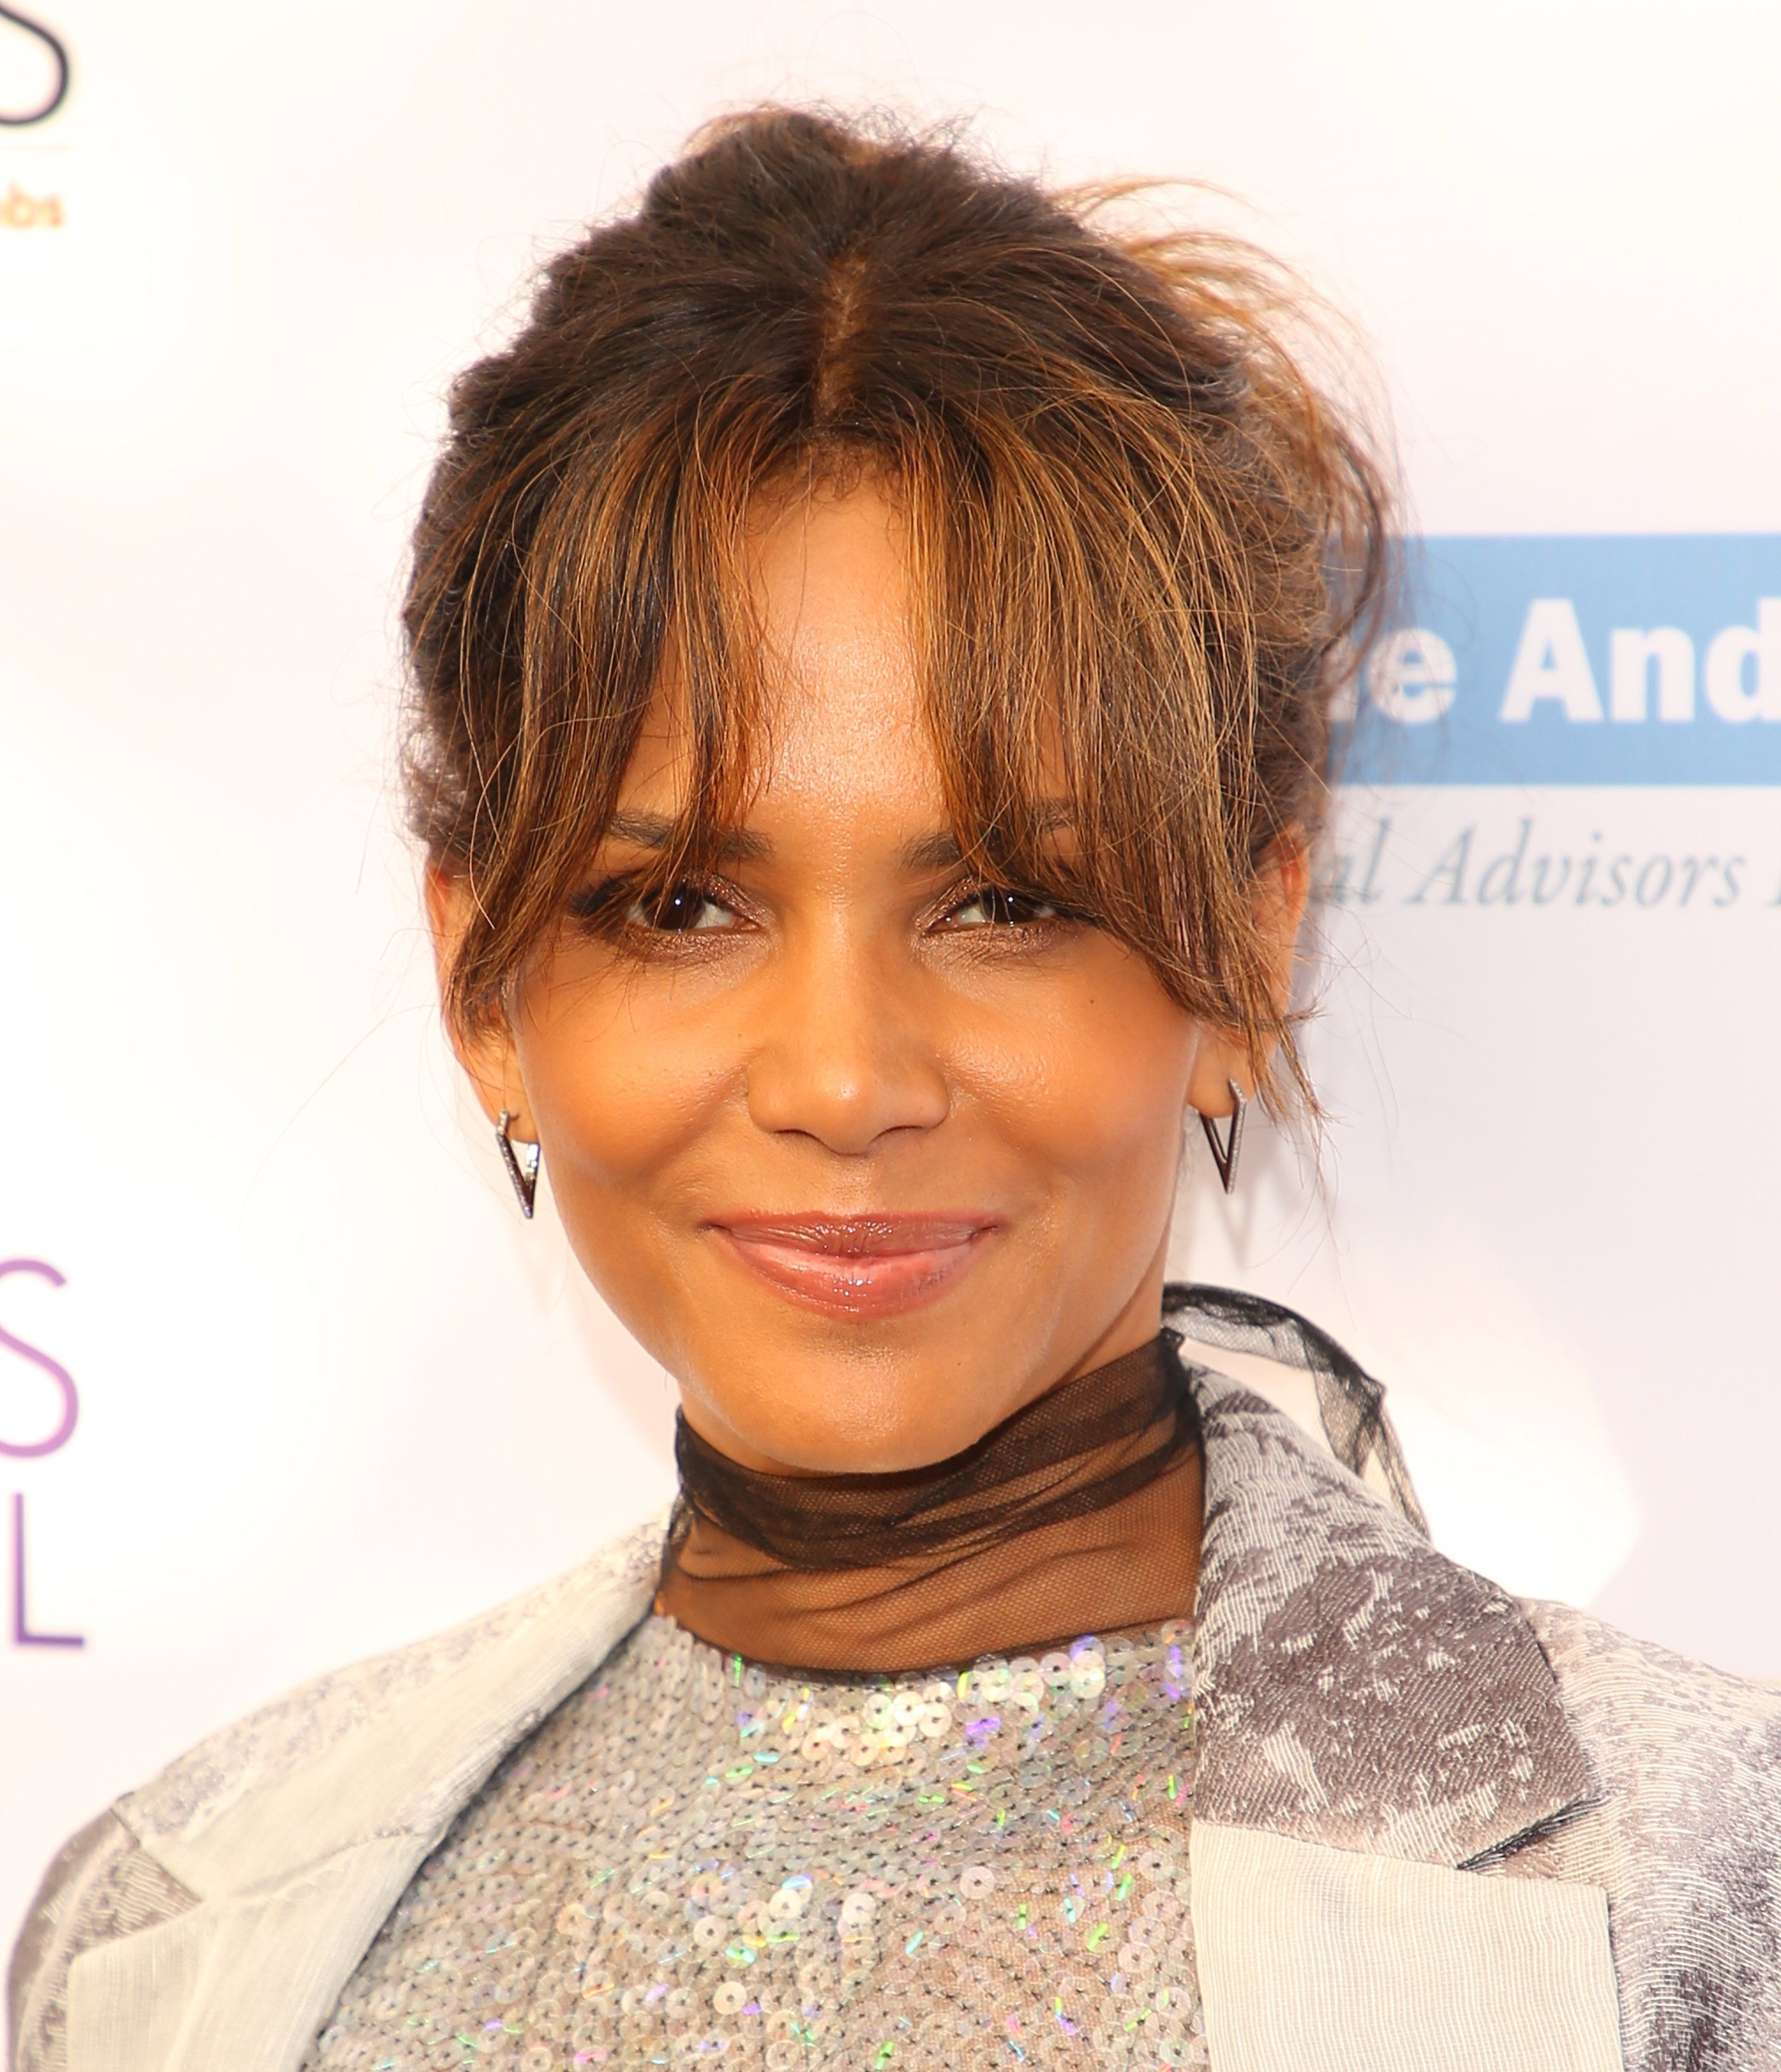 BRENTWOOD, CA - JUNE 03: Halle Berry attends the 16th Annual Chrysalis Butterfly Ball on June 03, 2017 in Brentwood, California. (Photo by JB Lacroix/WireImage)